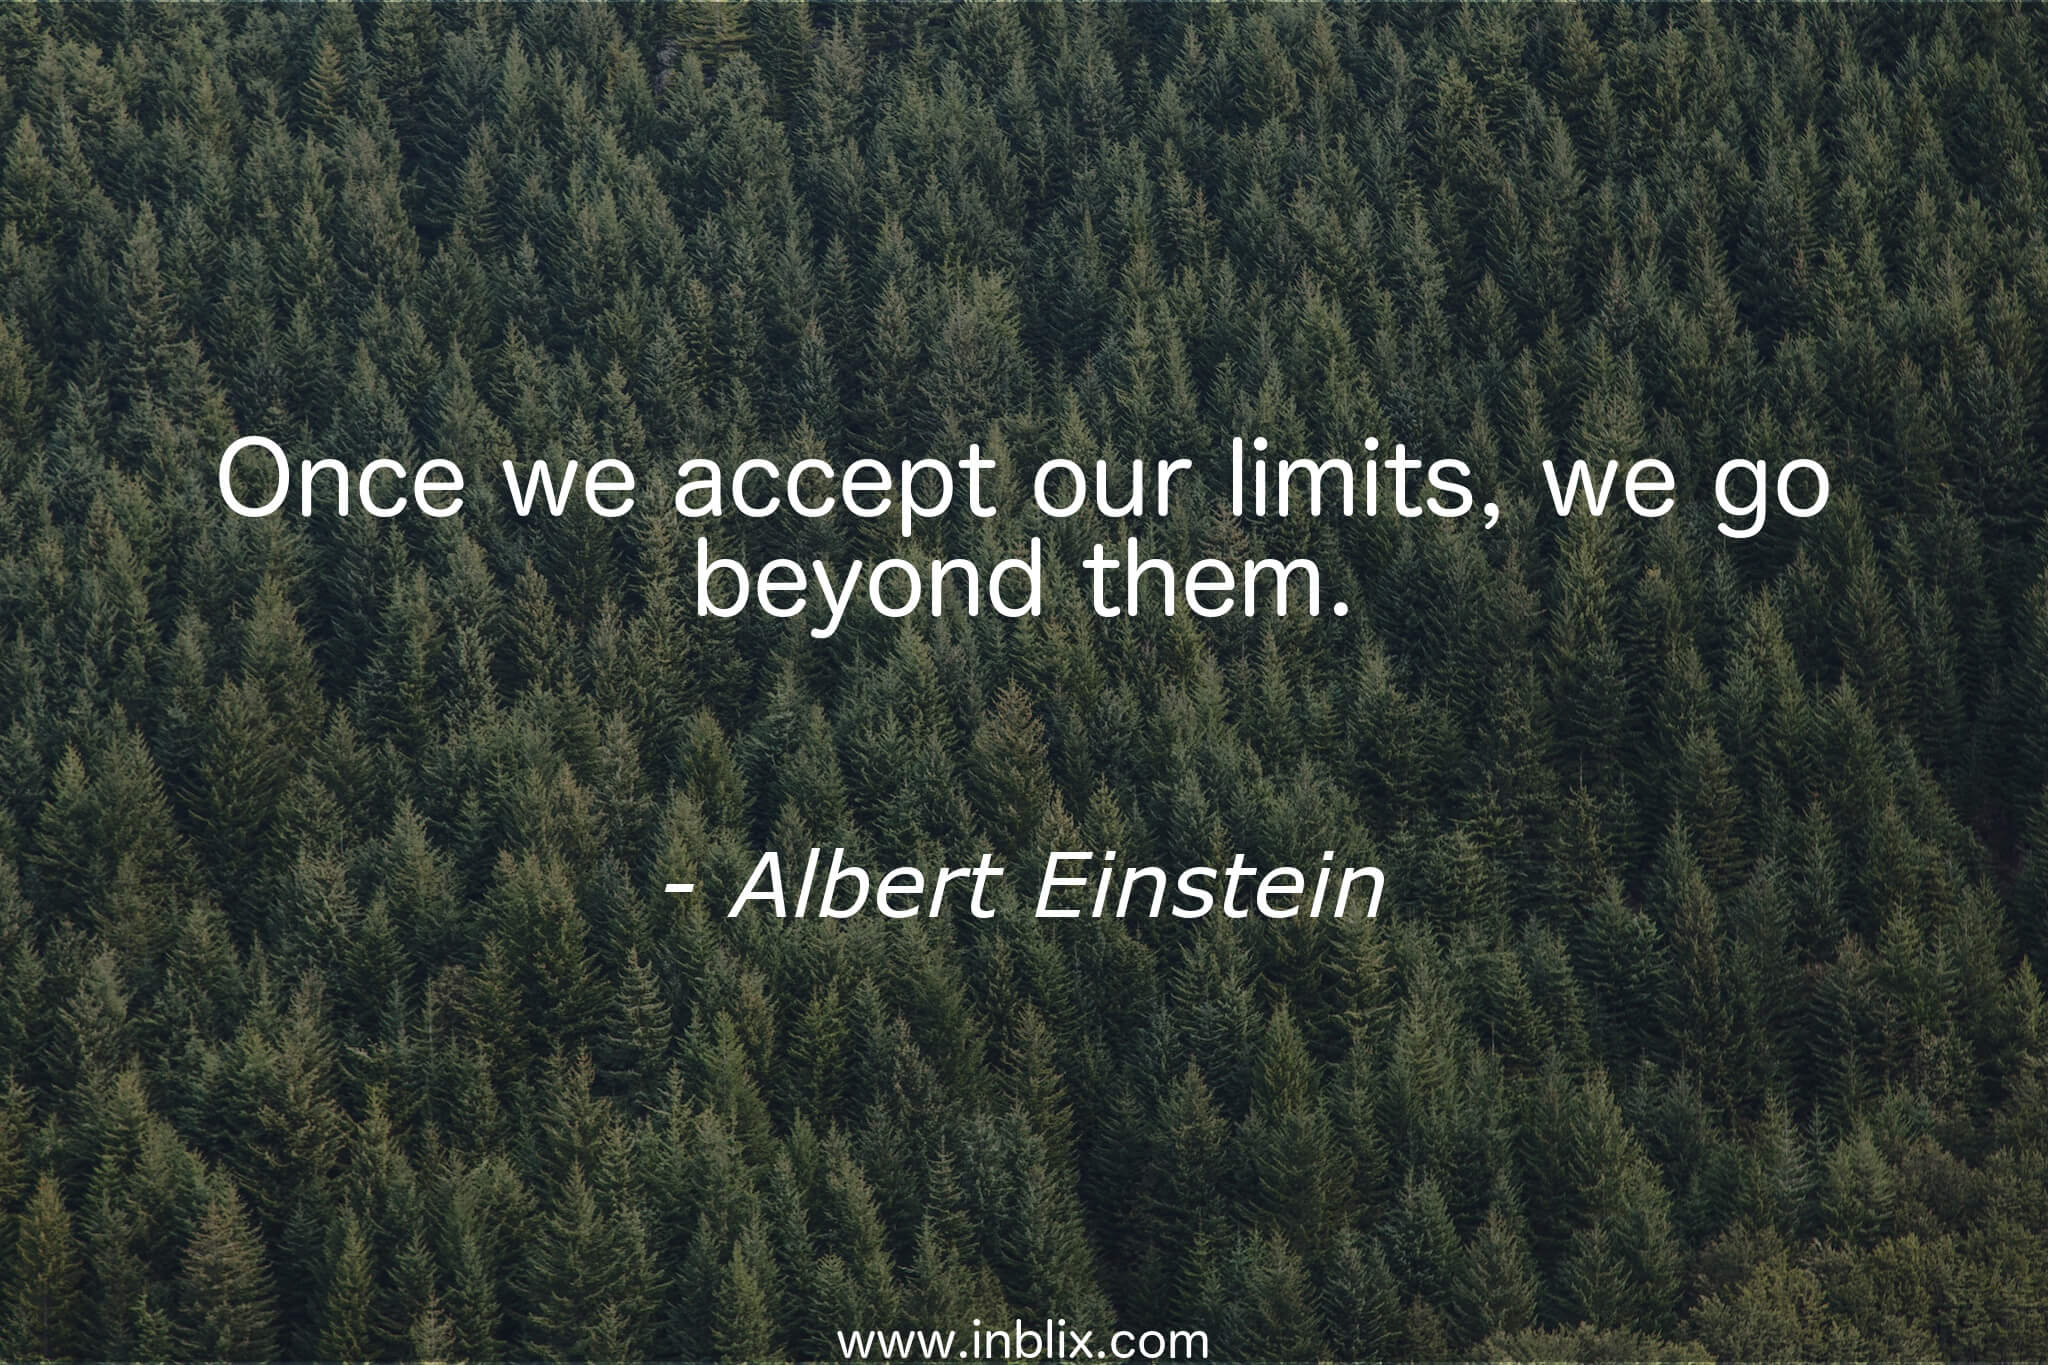 Once we accept our limits, we go beyond them.